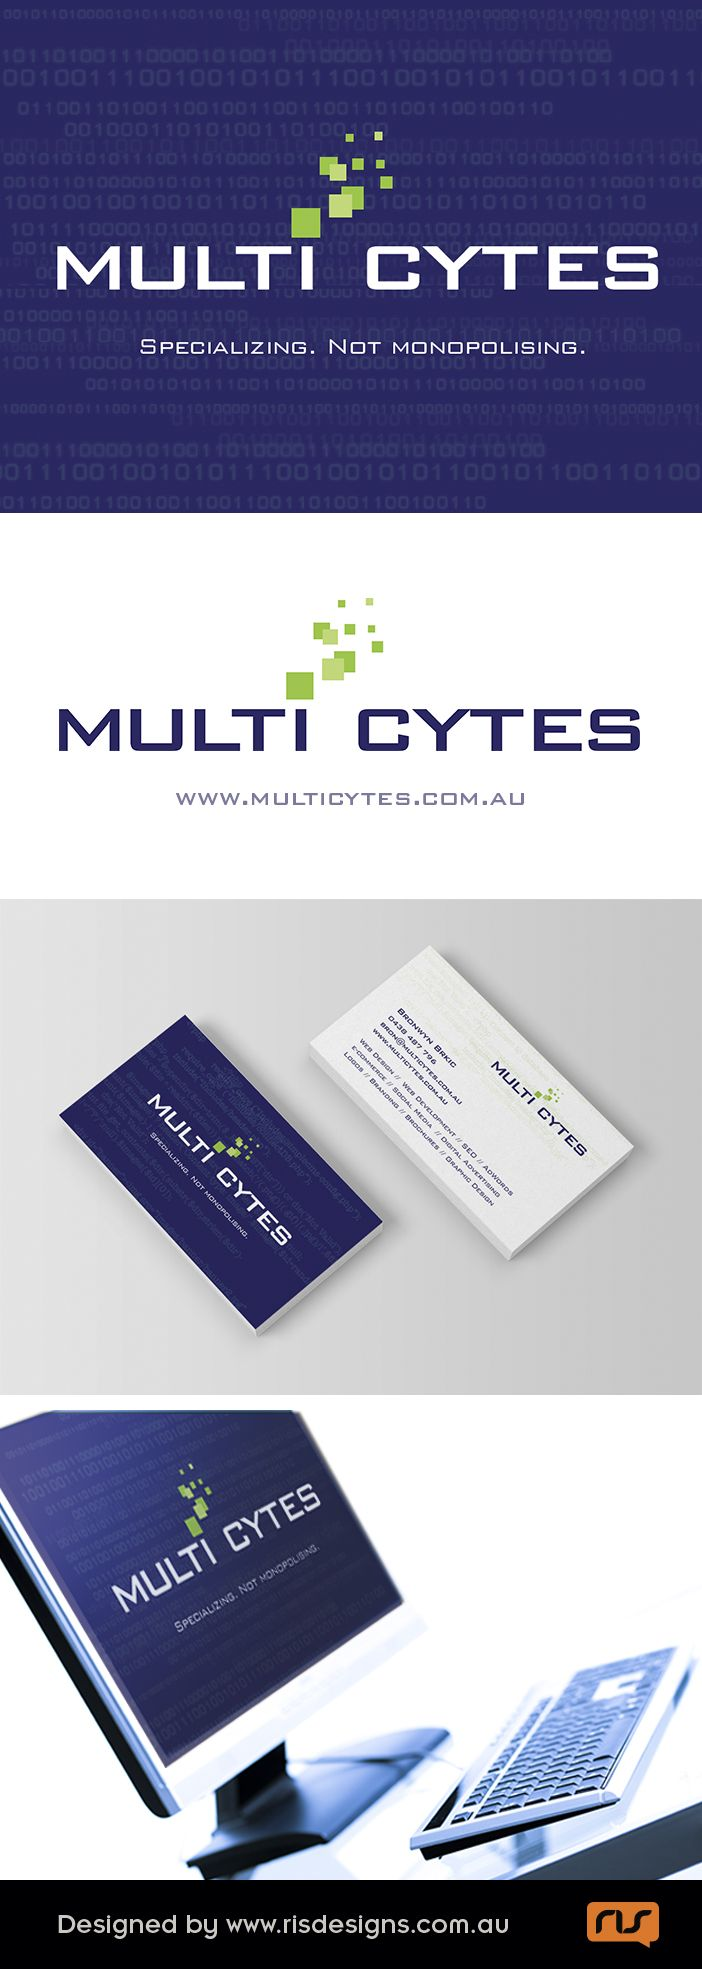 Multi Cytes is an Australian company producing quality websites and SEO services. Logo & stationary created by RIS Designs. www.risdesigns.com.au